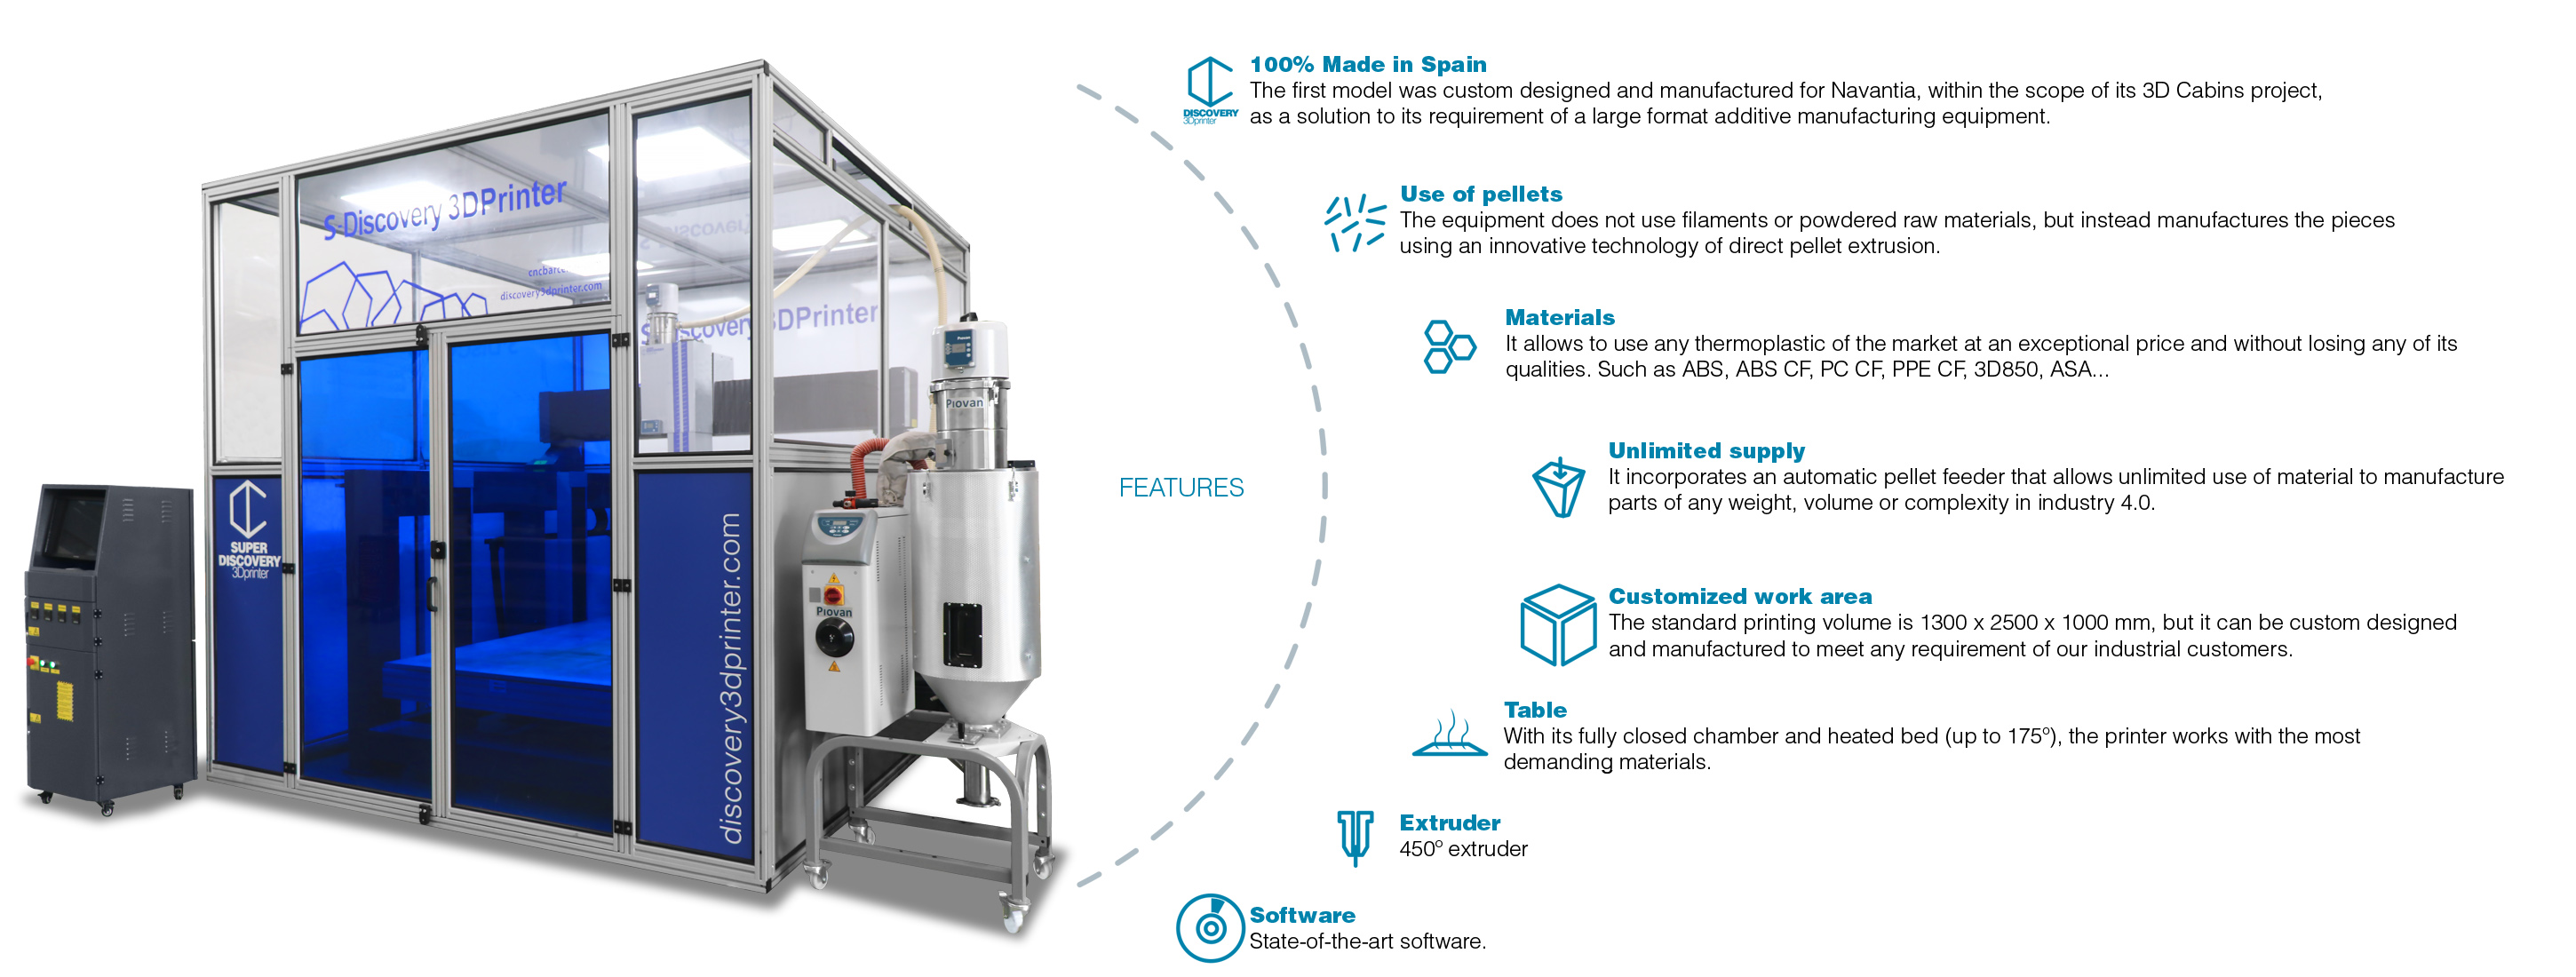 Industrial 3D printer Super discovery